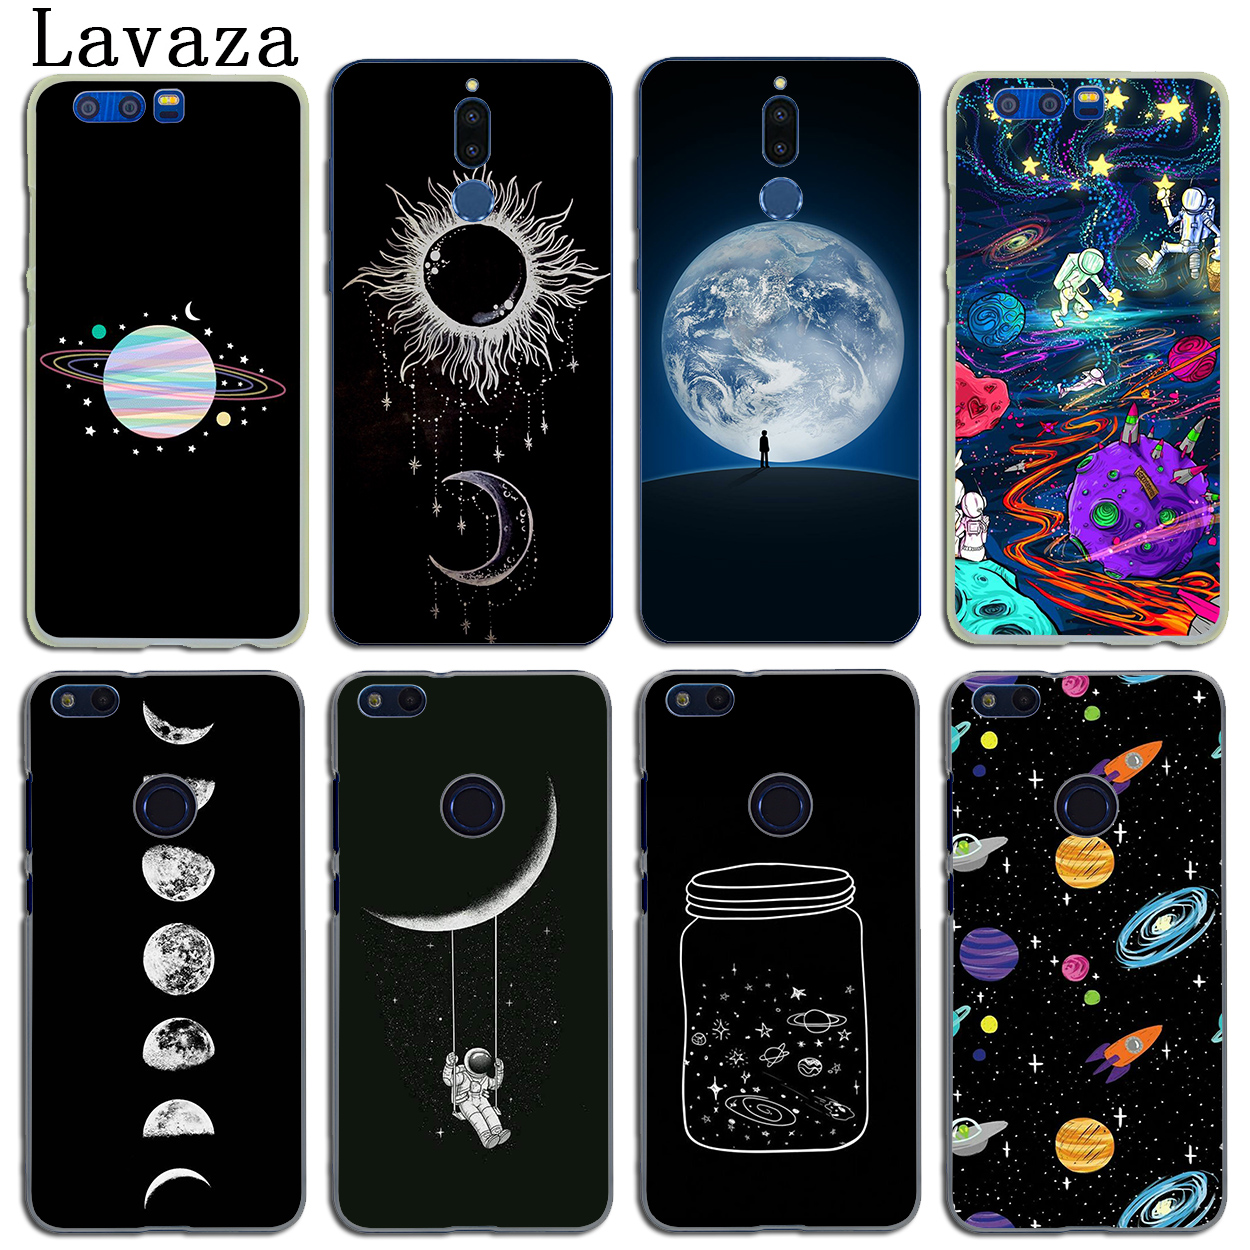 Collection Here Lavaza Sun And Moon Black Silicone Case For Huawei Honor 6a 7a Pro 7x 8 Lite 8x 8c 9 Note 10 Last Style Phone Bags & Cases